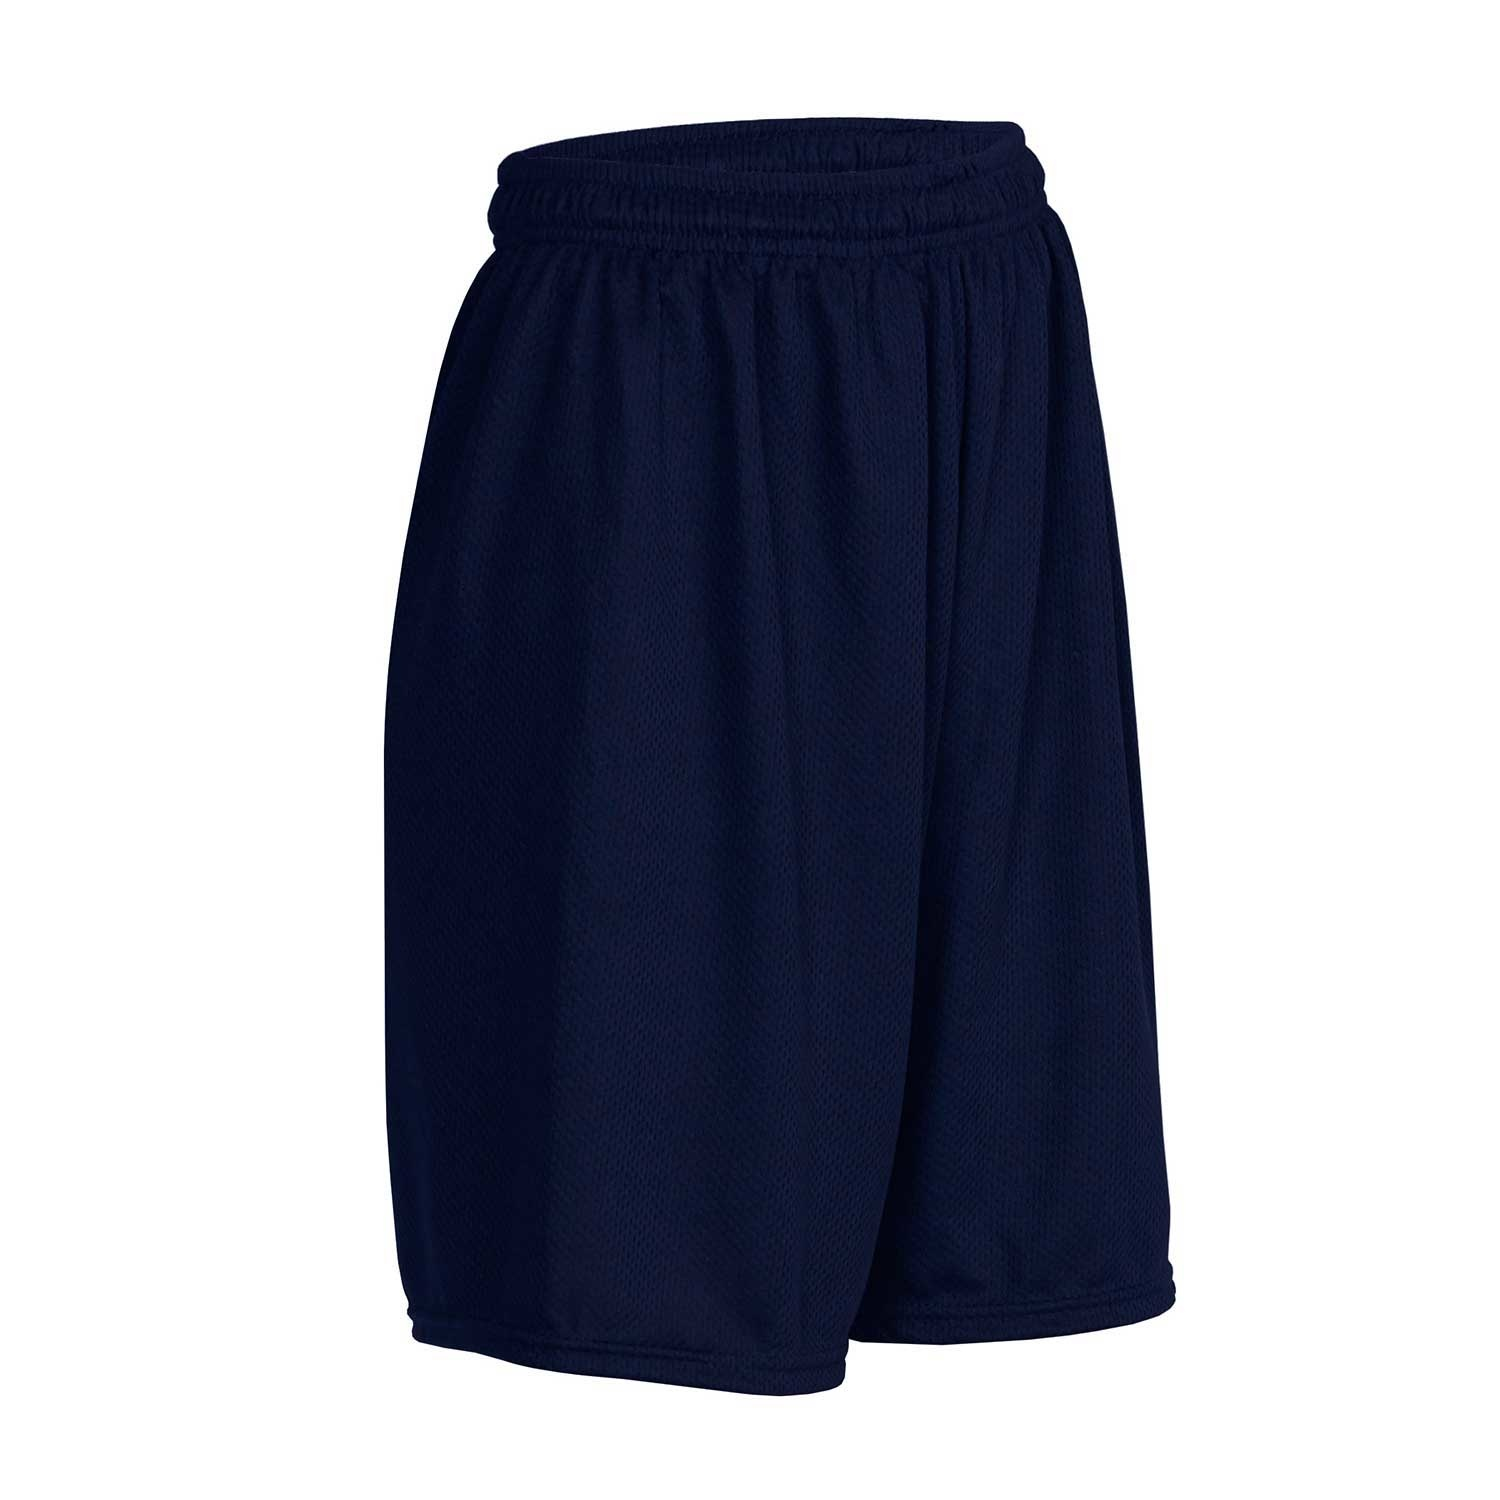 St. Anthony P.E Mesh Short